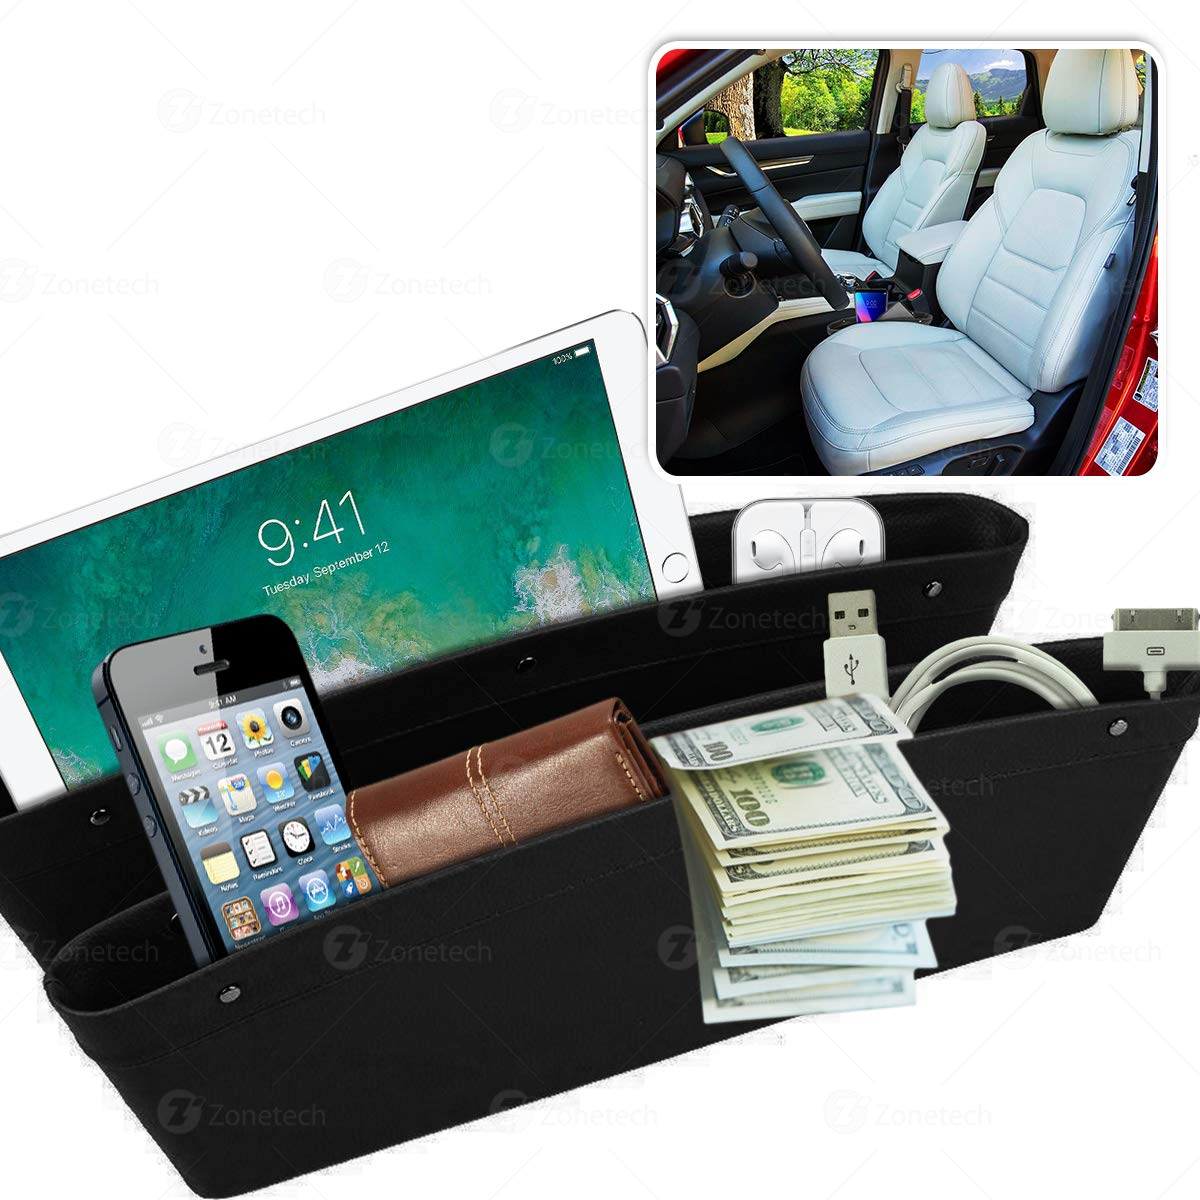 Car Seat Gap Filler Pocket Organizer Wallet Zone Tech Classic Black Premium Quality Coin Side Pocket Filler Gap Organizer for Phones and Many More